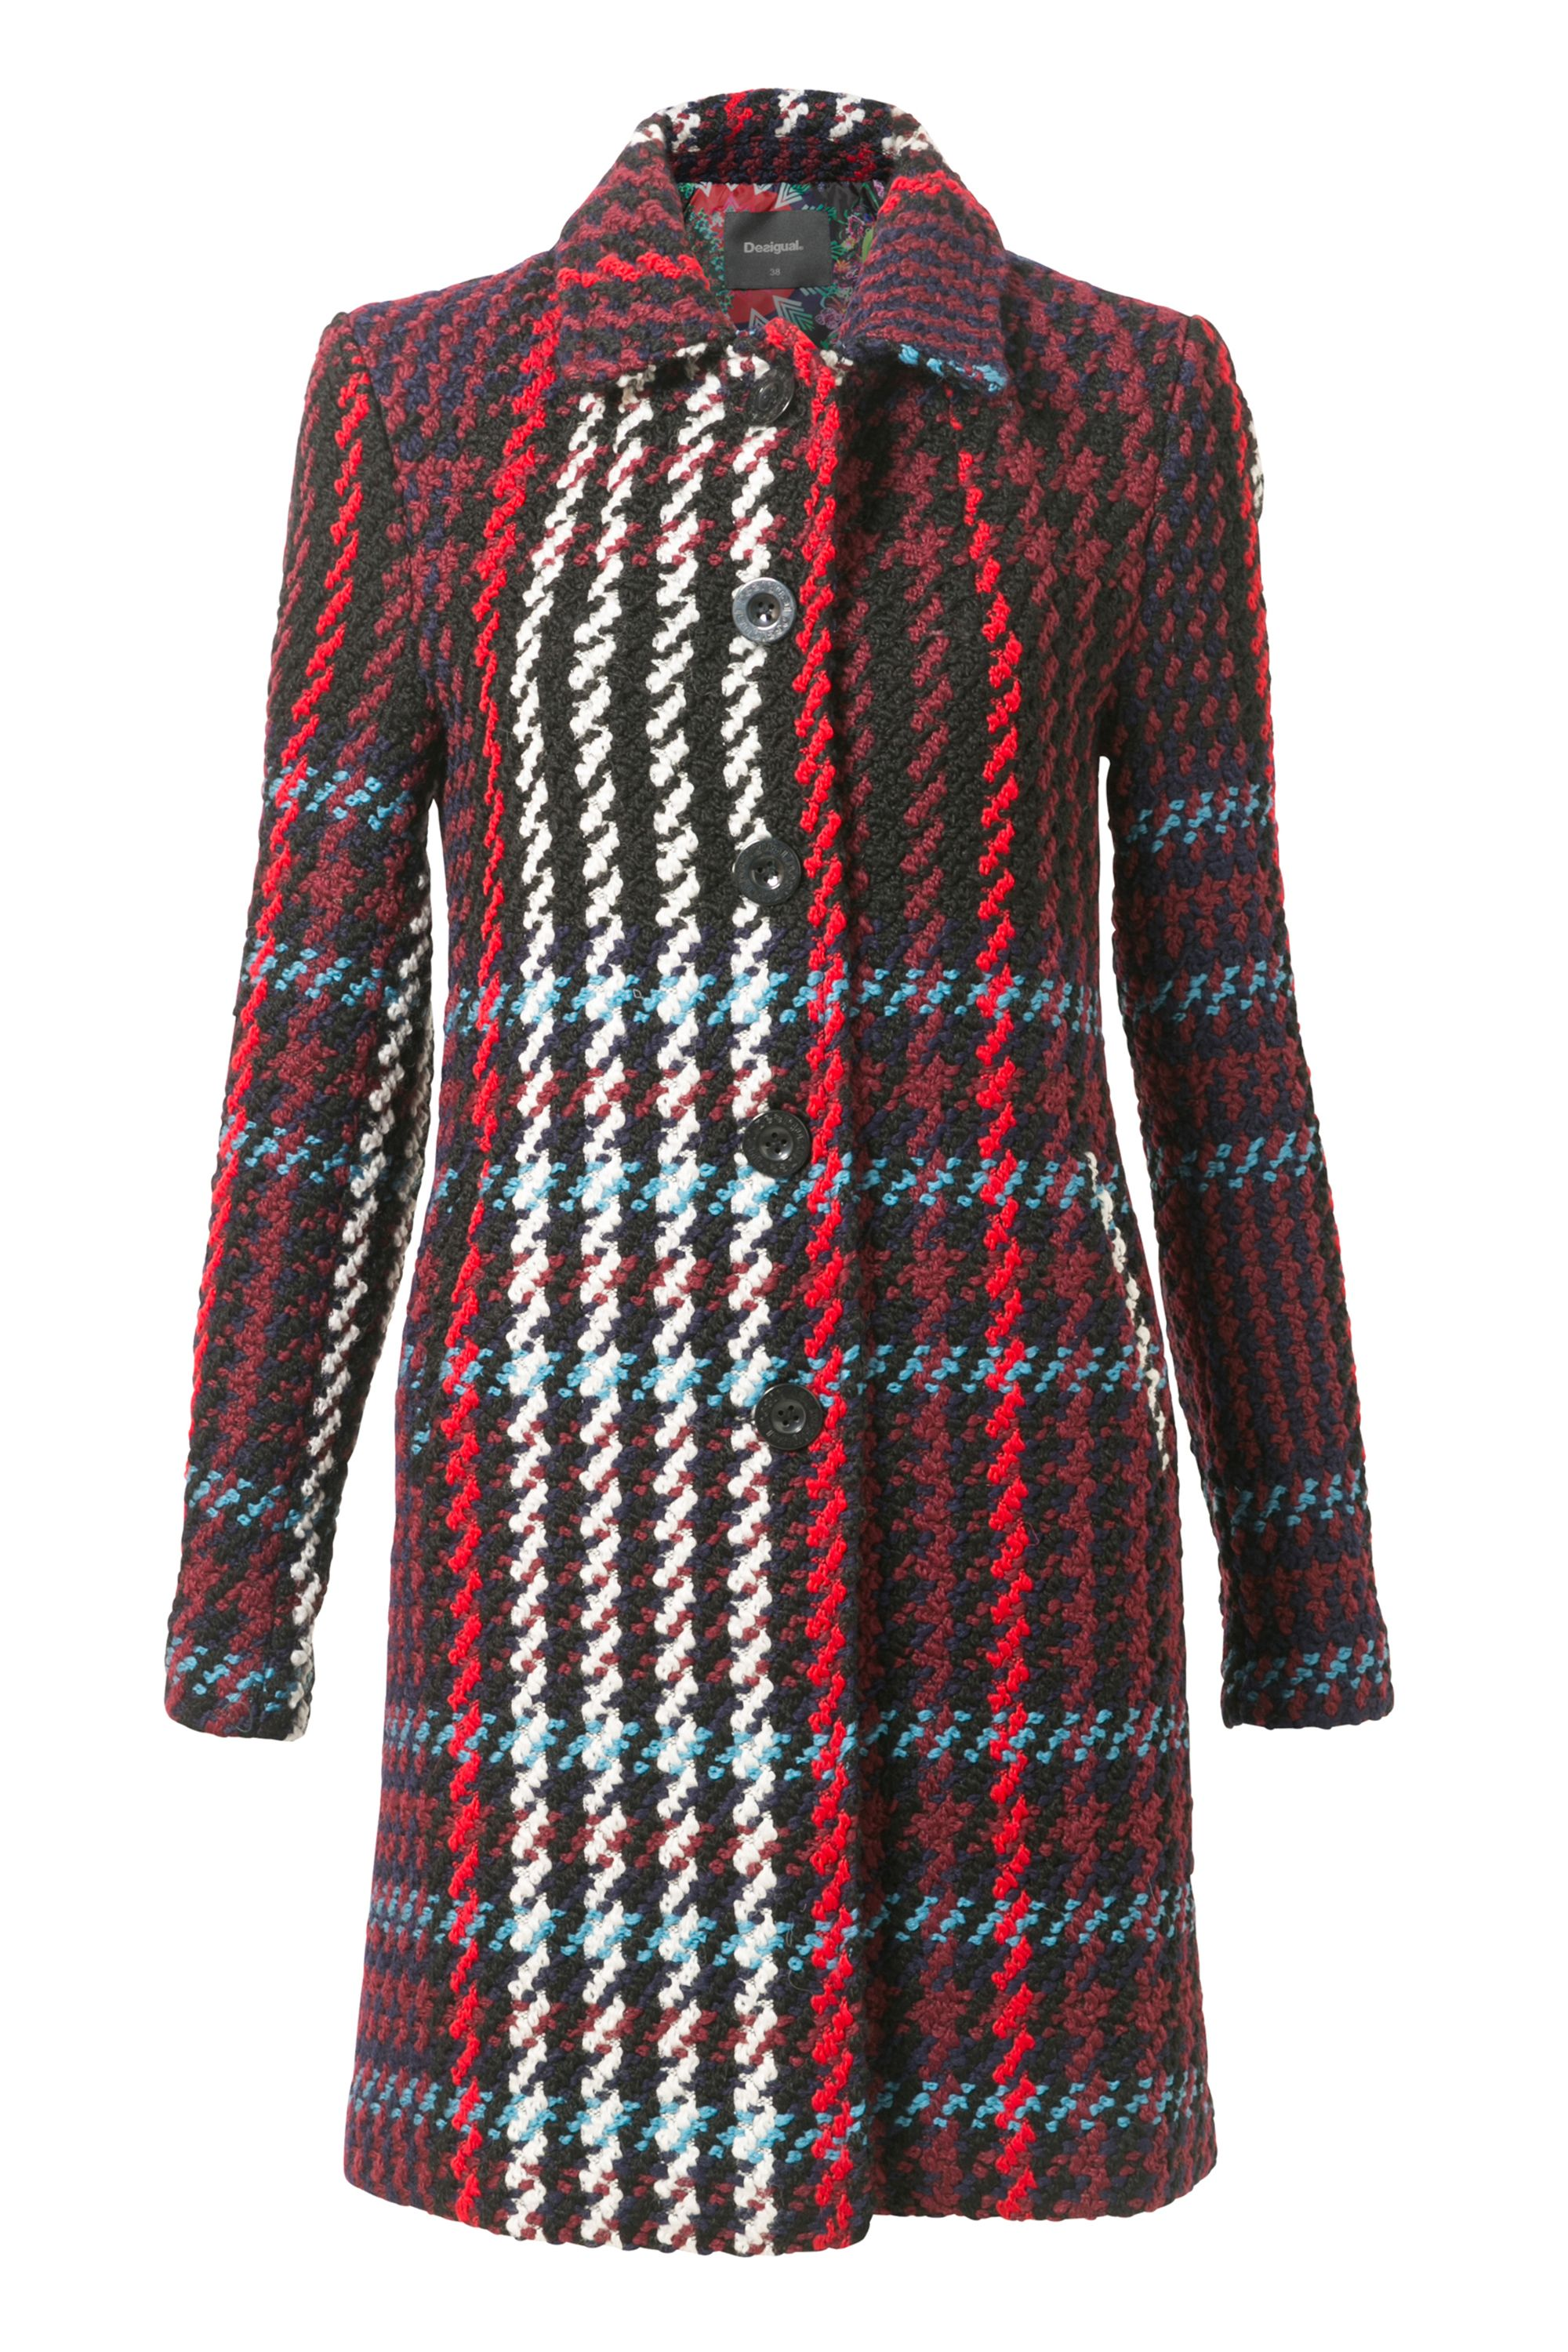 Desigual Coat Monetti, Red